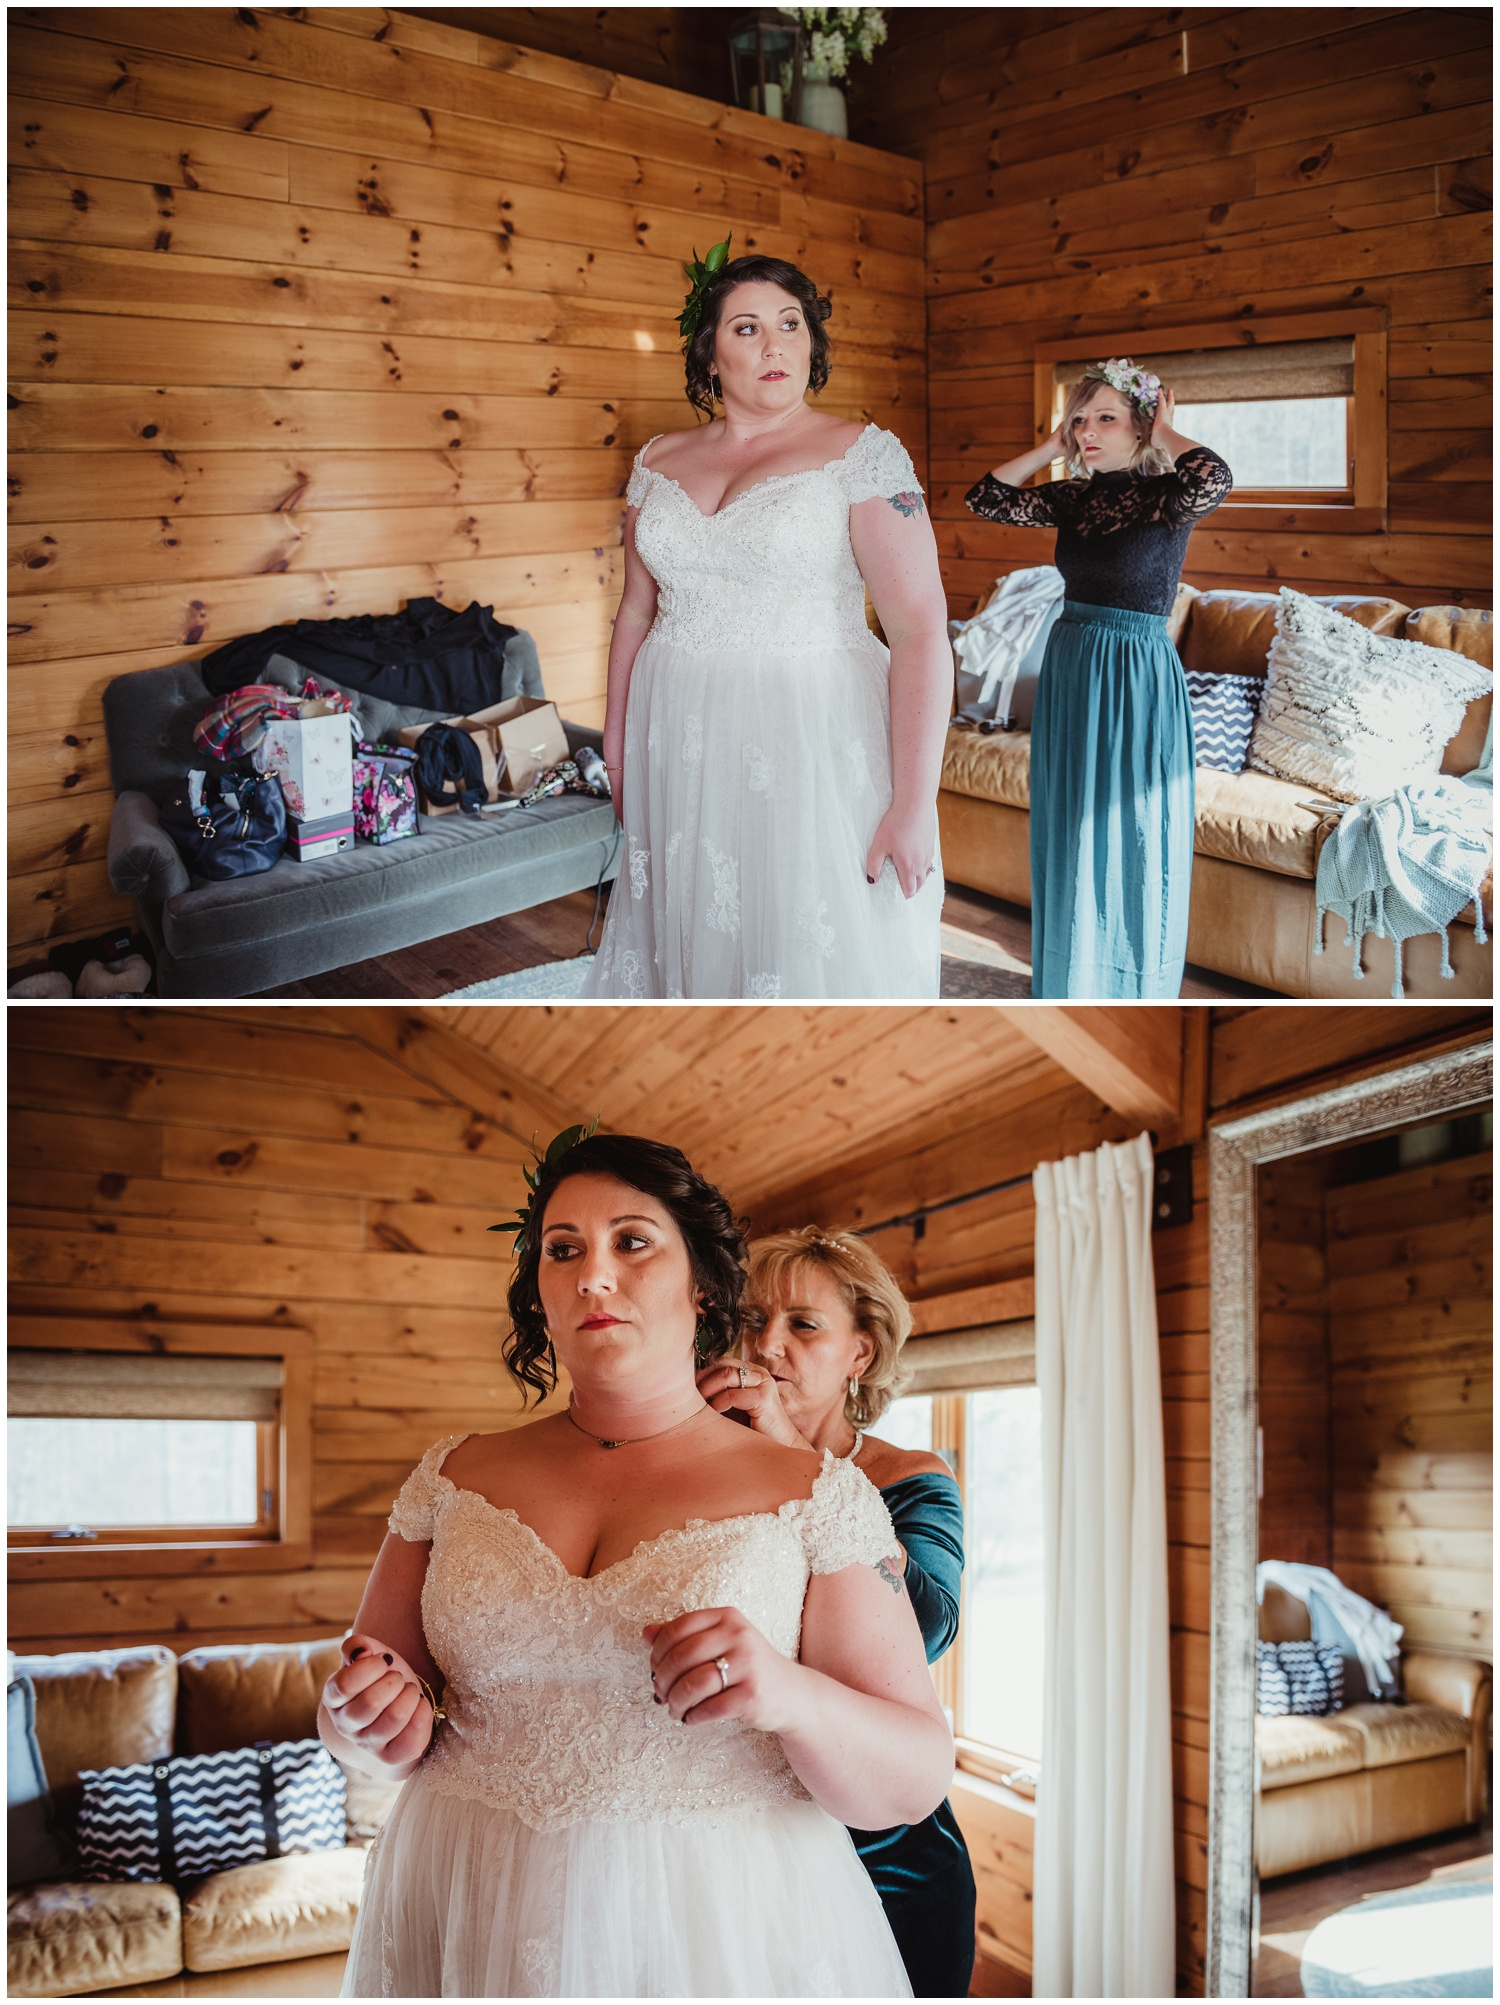 The bride getting ready before her wedding day with her bridesmaids and Mother at the Barn at Valhalla in Chapel Hill, taken by Rose Trail Images.